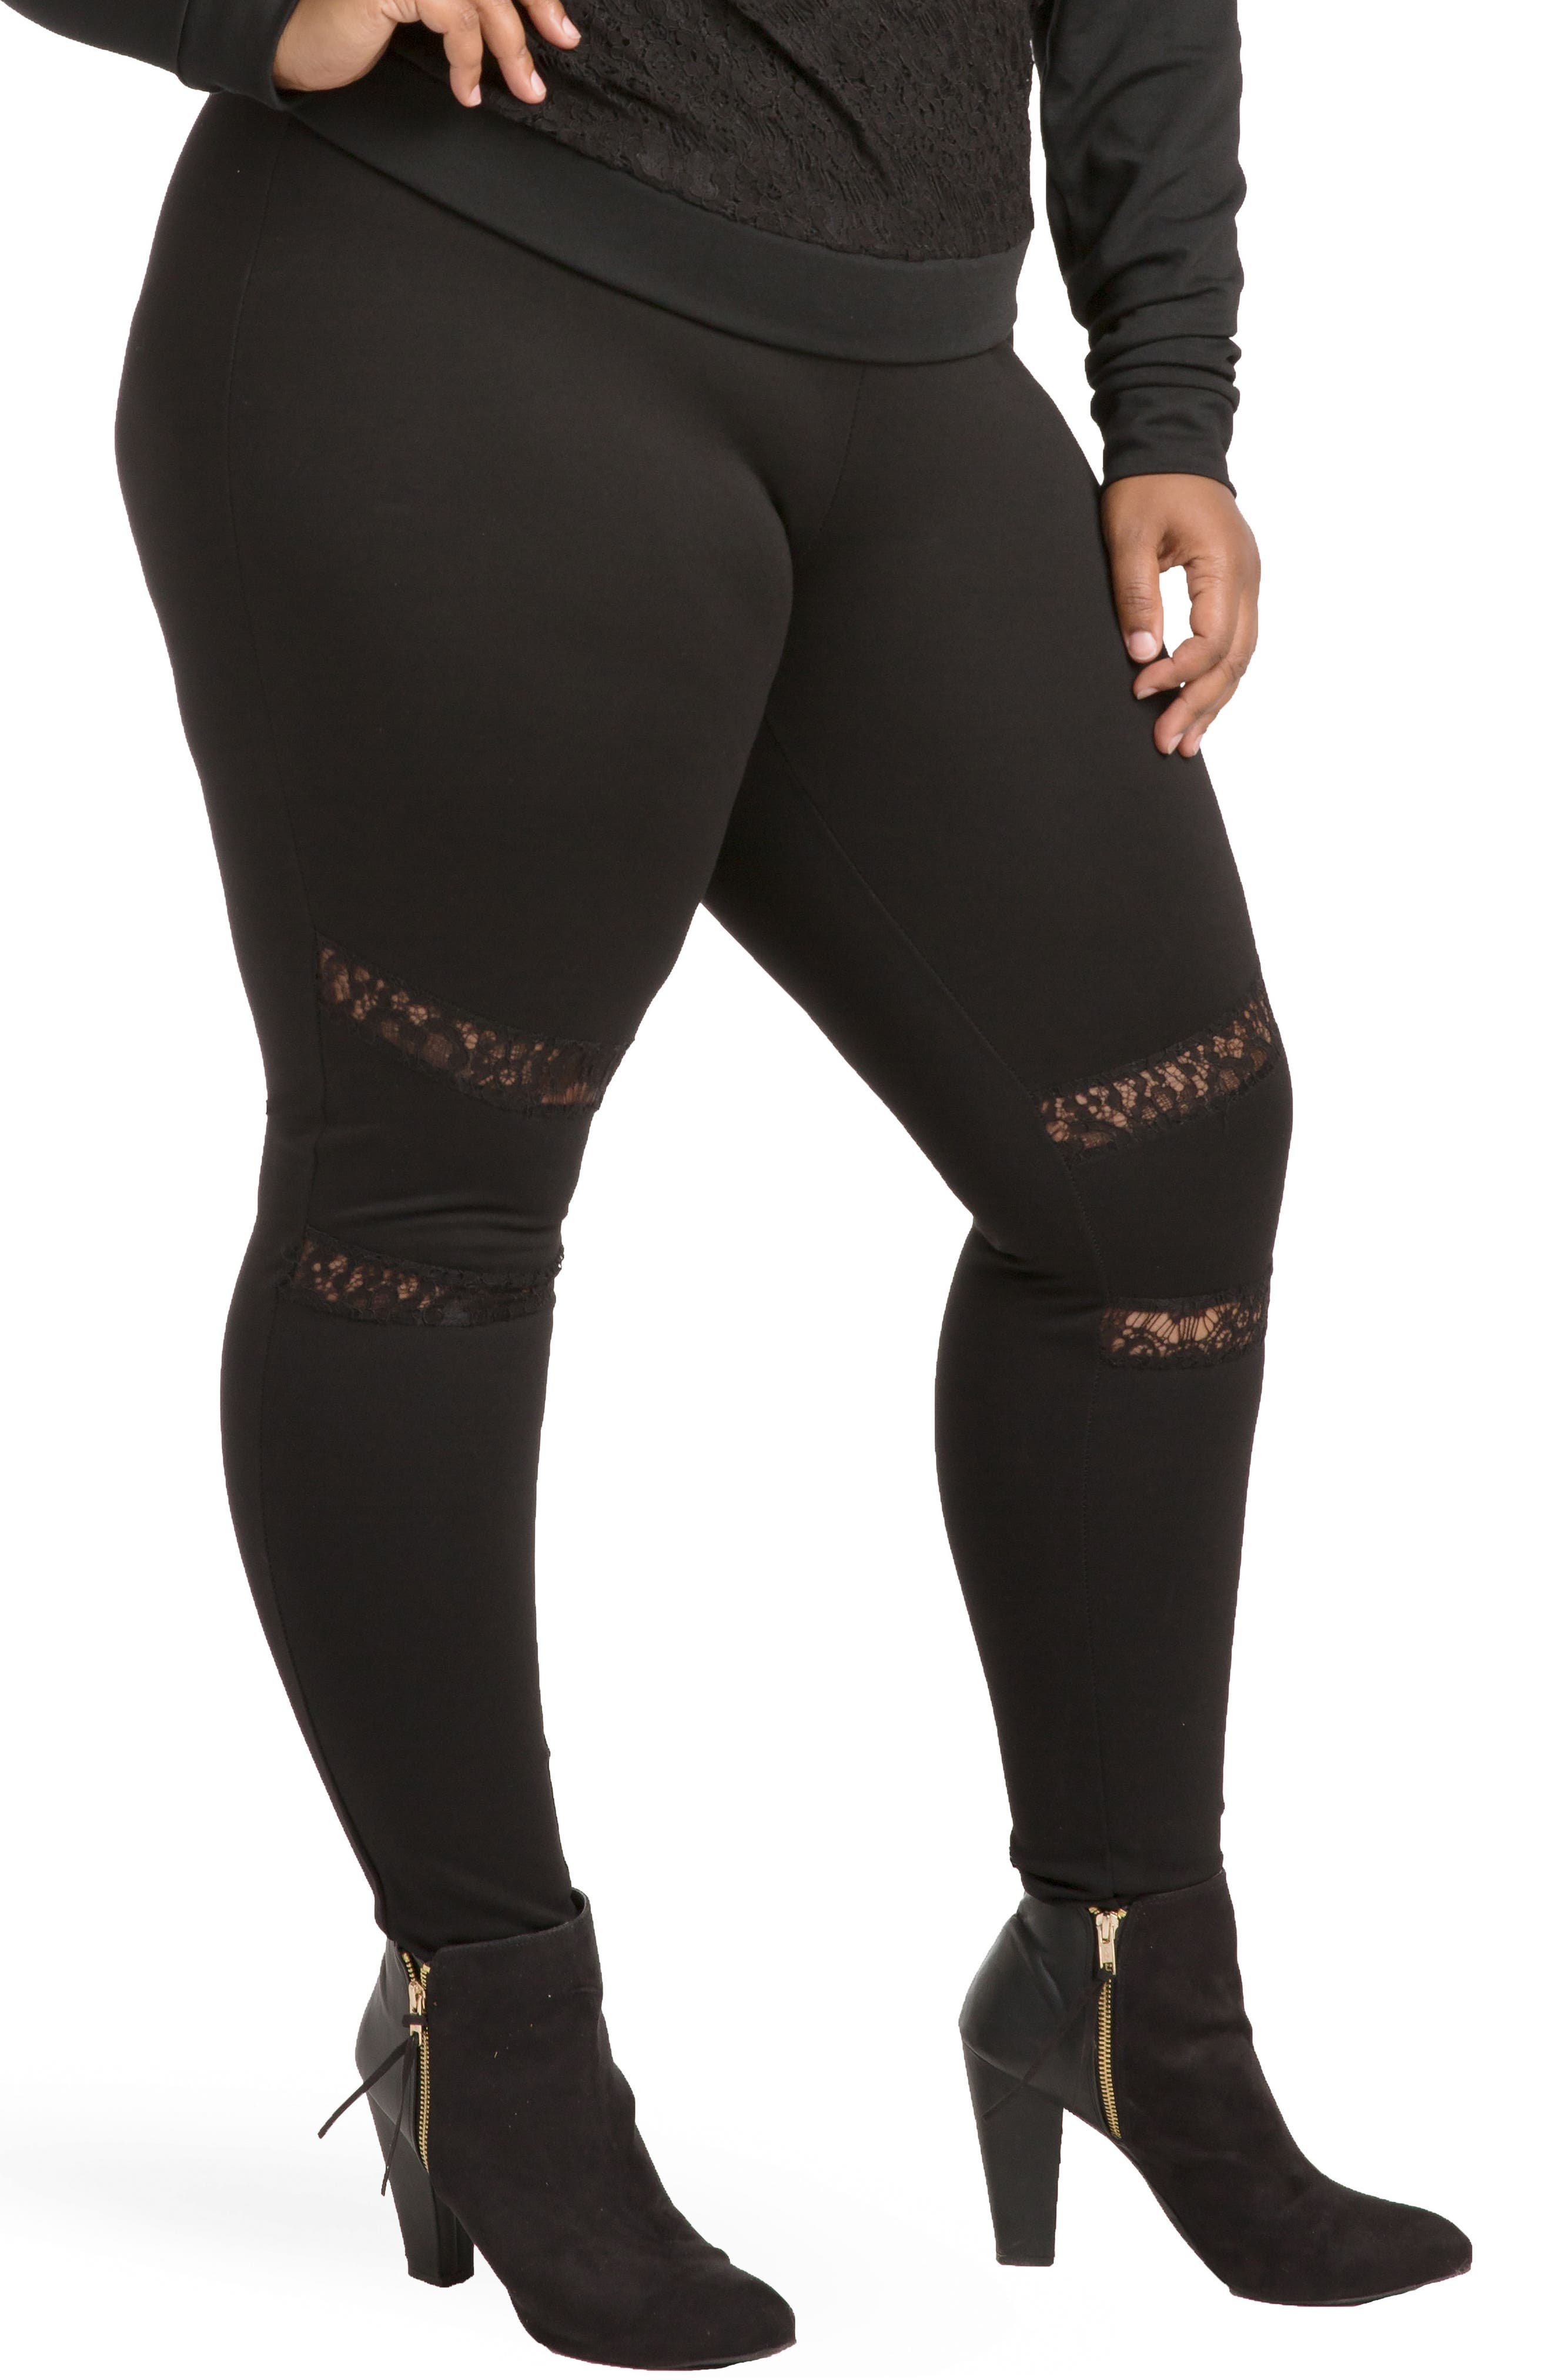 Plus Size Poetic Justice Janet Curvy Fit Leggings, Black